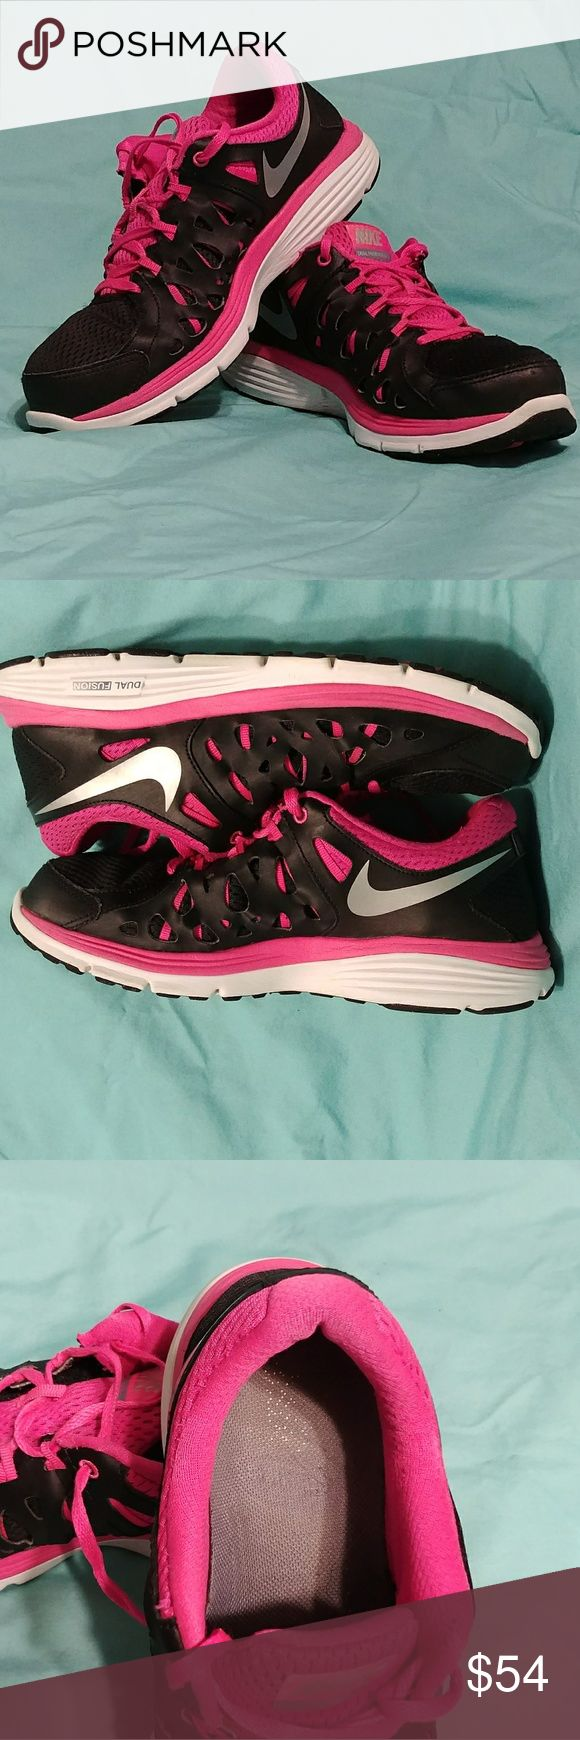 Nike Dual Fusion Womens Nike Dual Fusion size 10 black,  pink and white. EUC Normal wear No Damage. Feel free to ask any questions. Thank You for shopping my closet❤ Nike Shoes